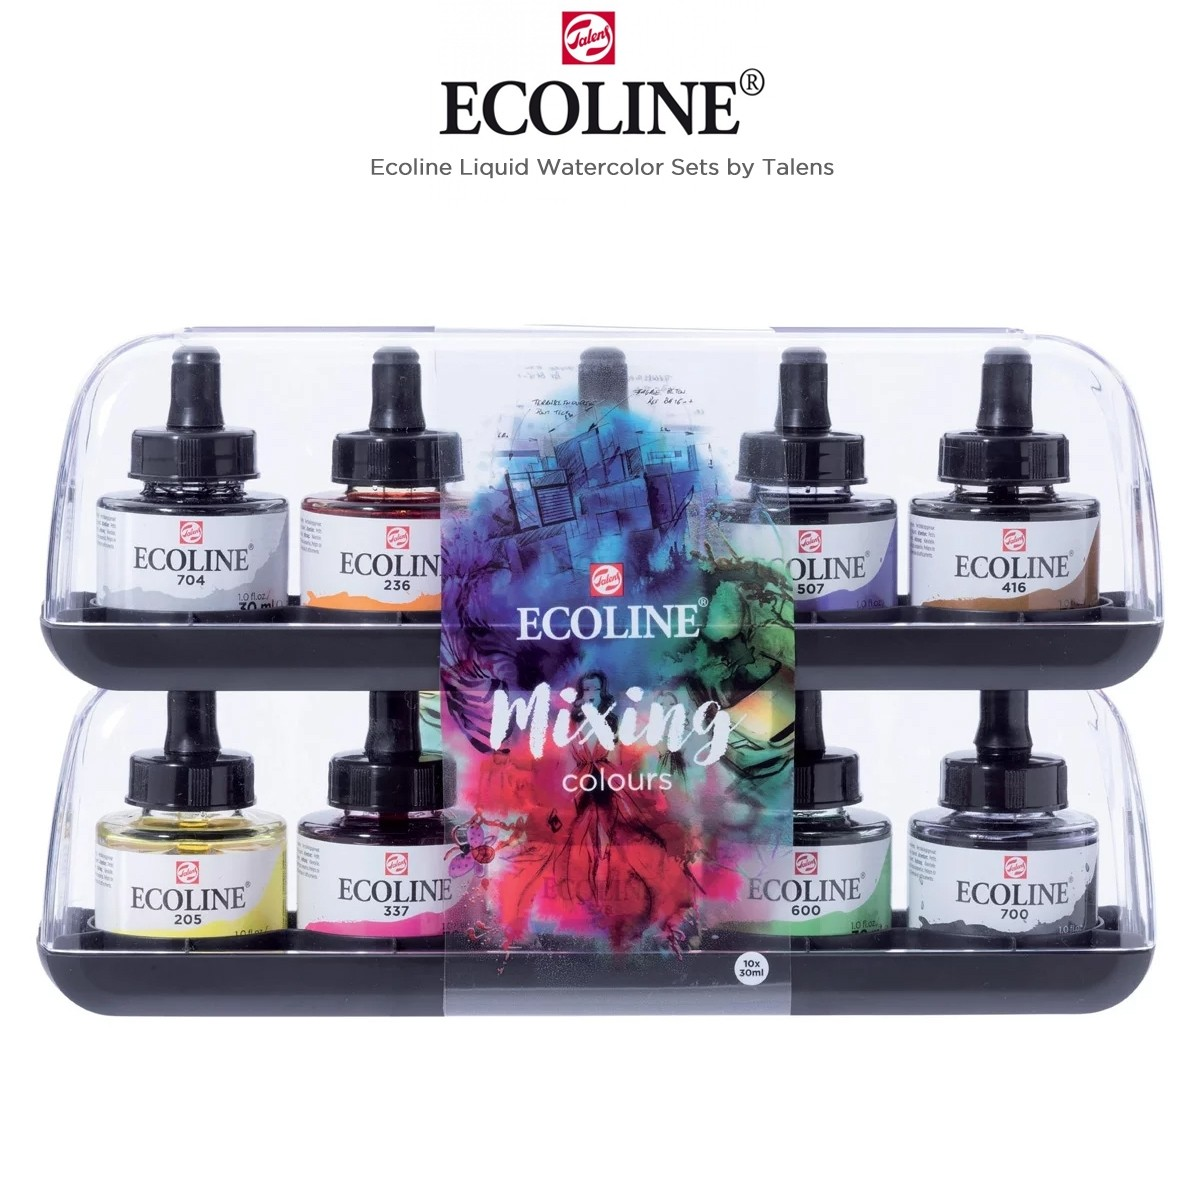 Ecoline Liquid Watercolour Dropper Jar Sets by Talens